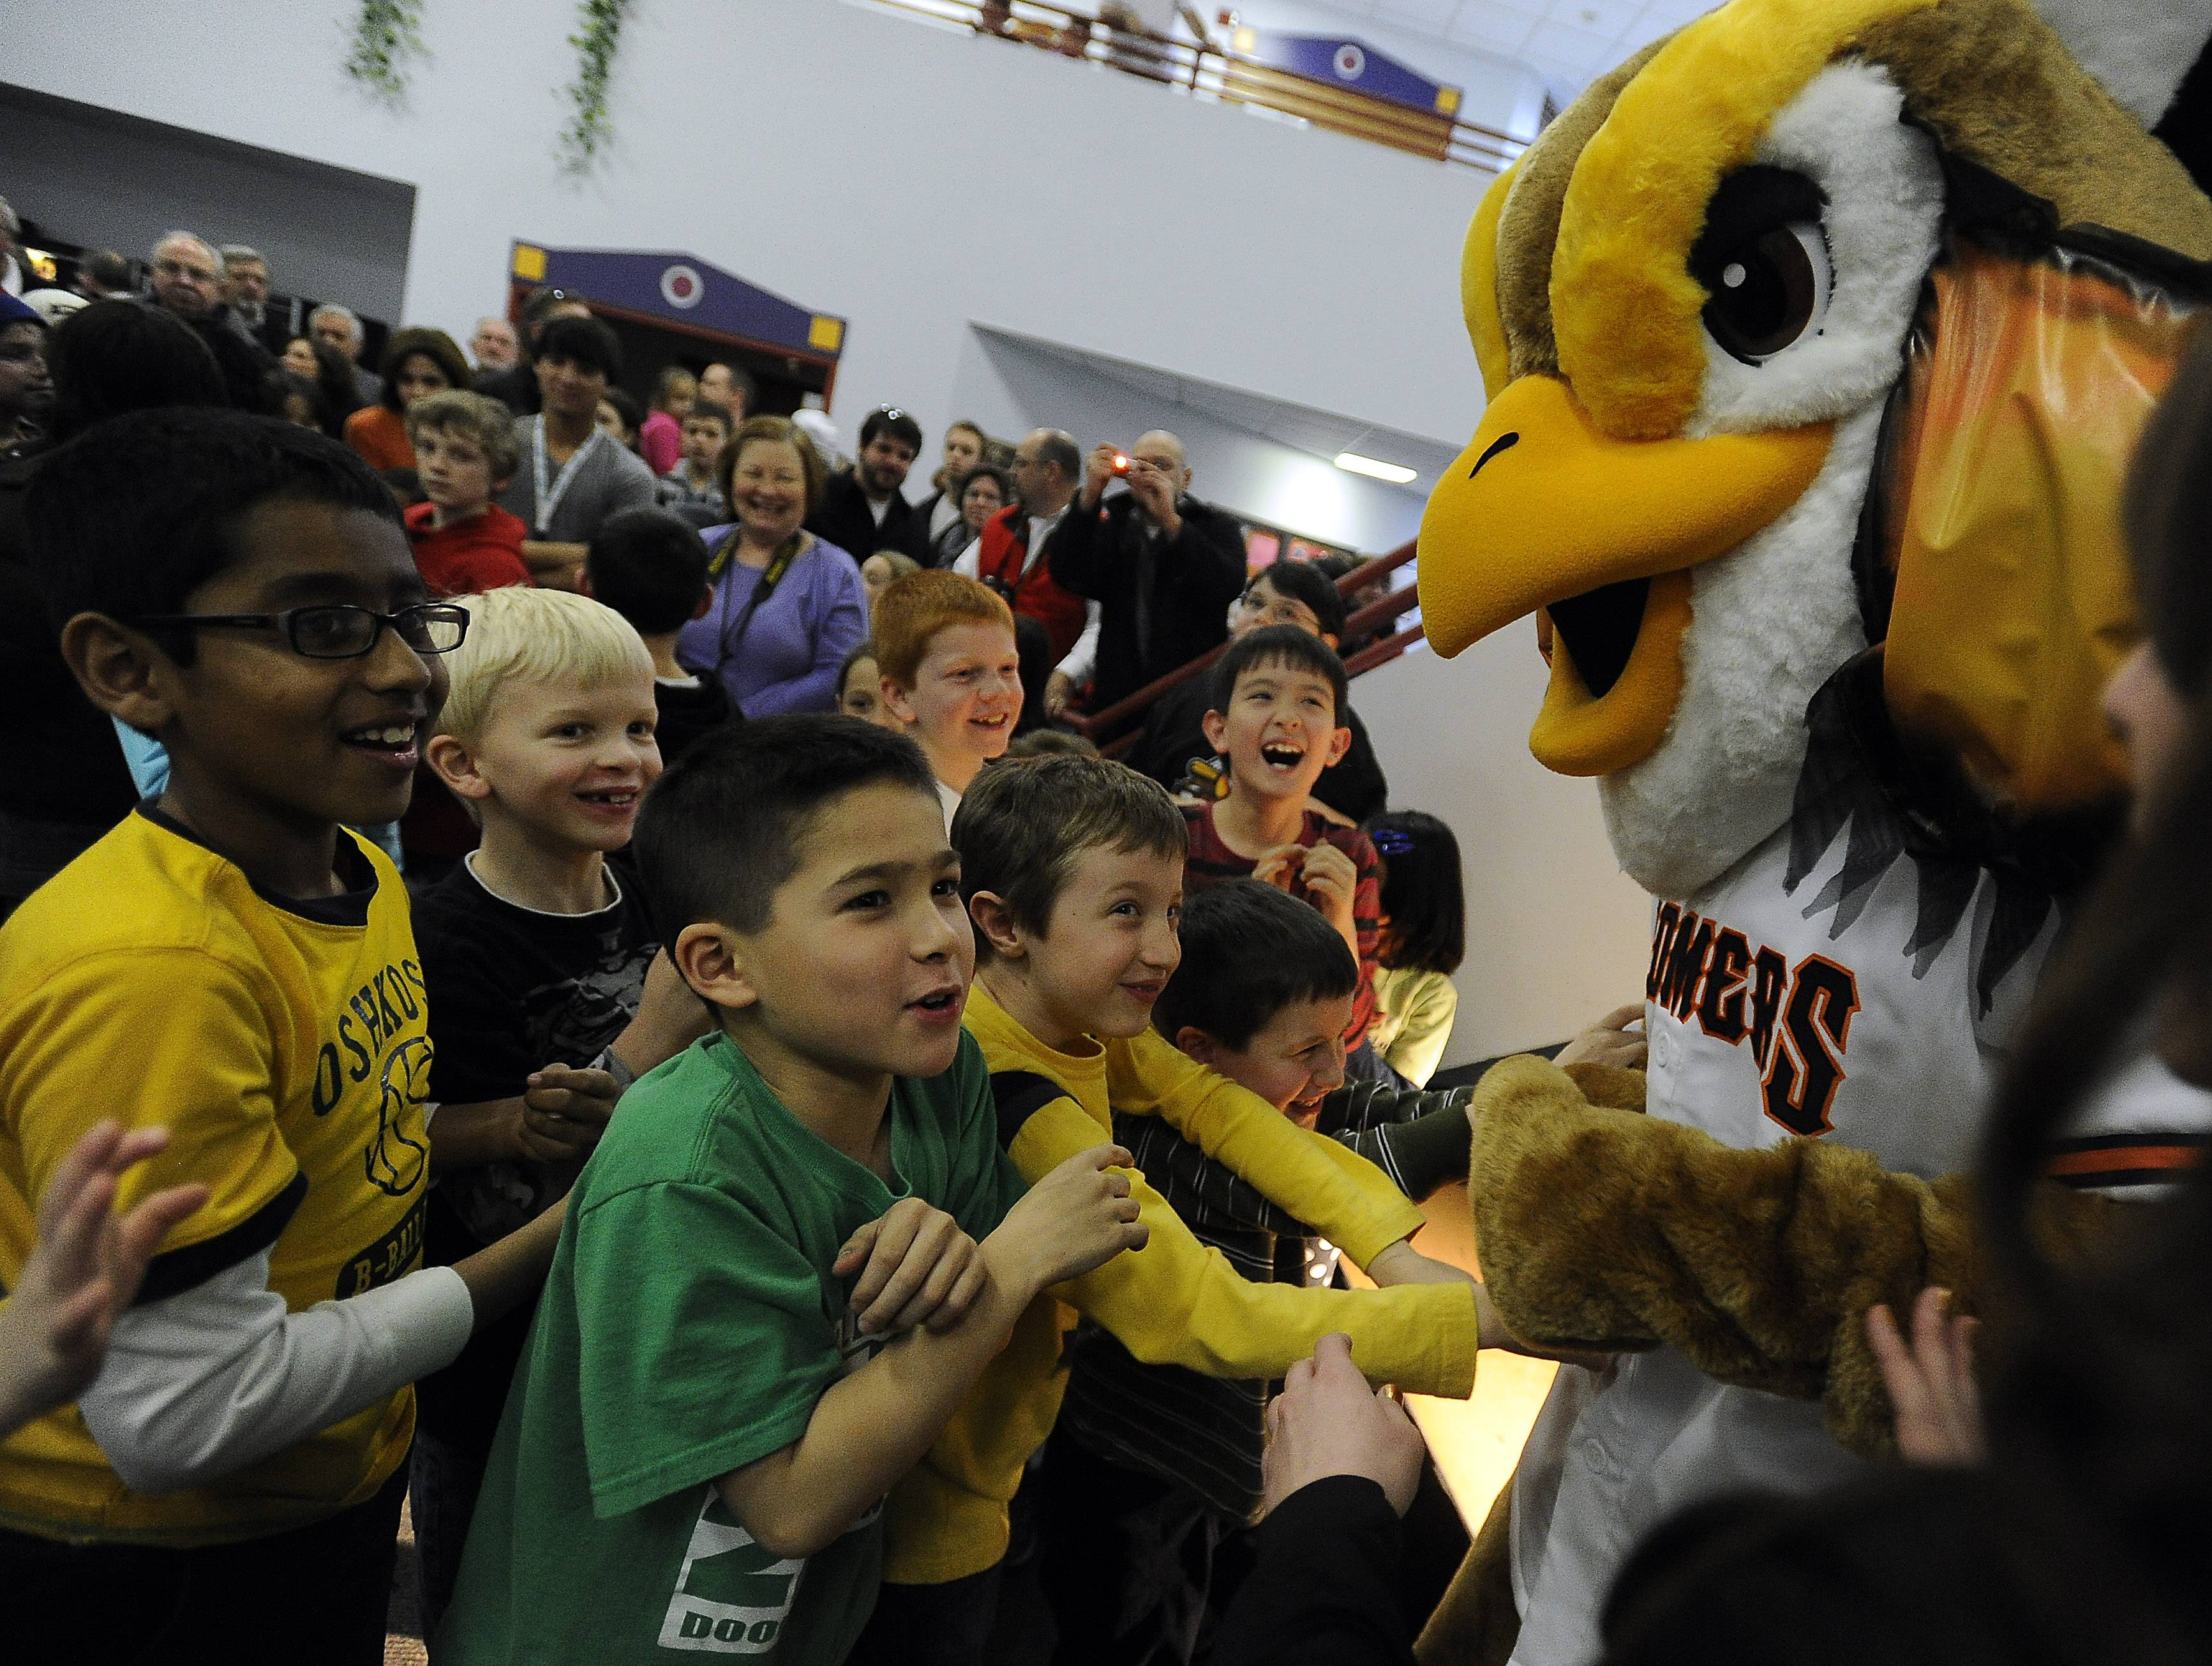 Meet Coop, the prairie chicken mascot from the Schaumburg Boomers baseballl team, pictured,  along with a number of other Chicago area mascots at the Character Caravan event, from noon to 2 p.m. Saturday, June 21,  in Schaumburg's Woodfield Mall.